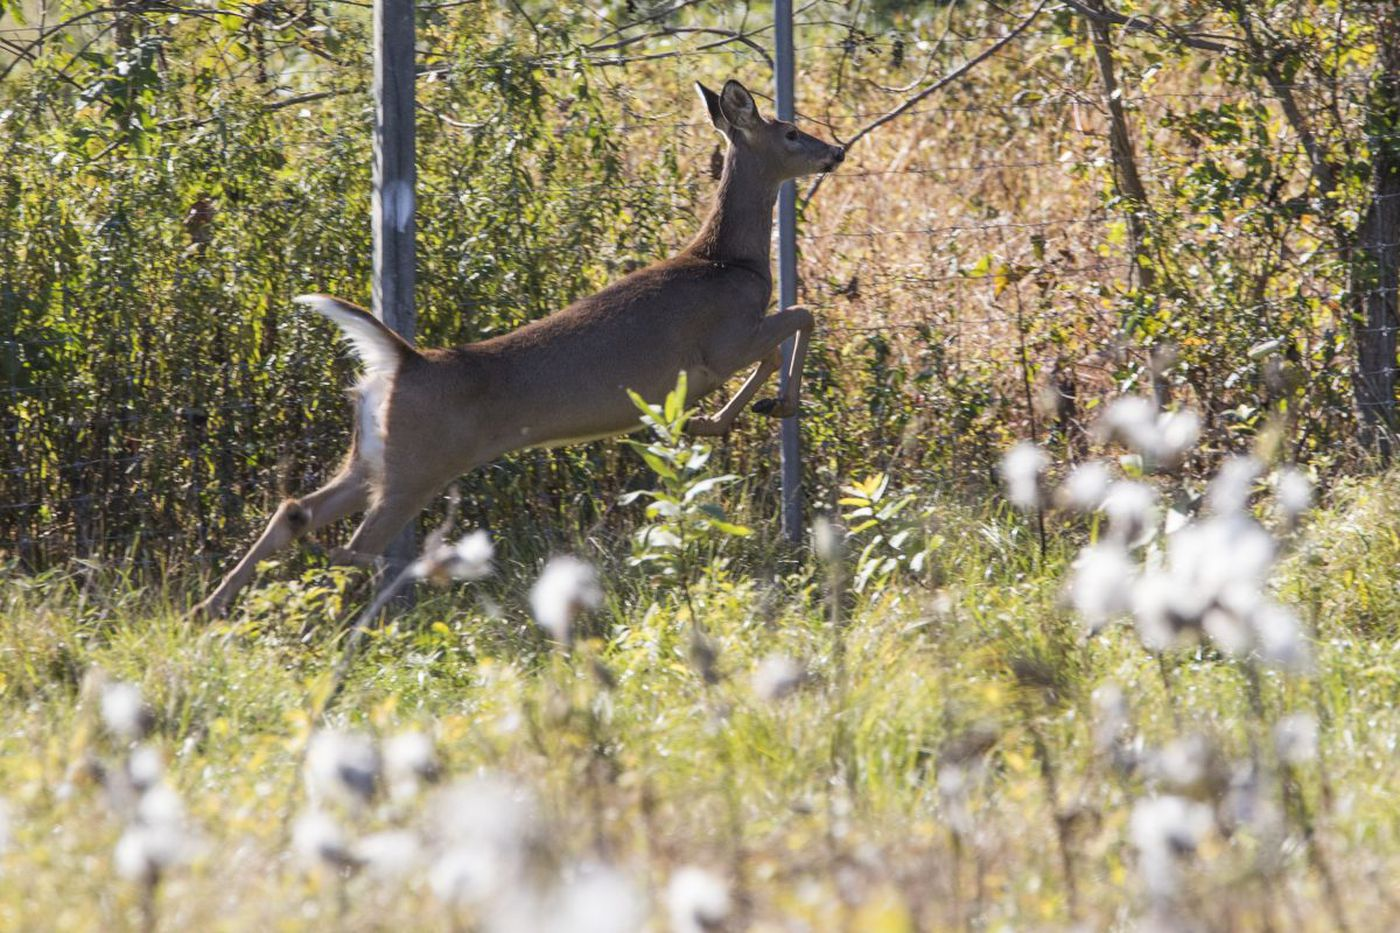 Bow hunting for deer in Philadelphia? It's a real possibility